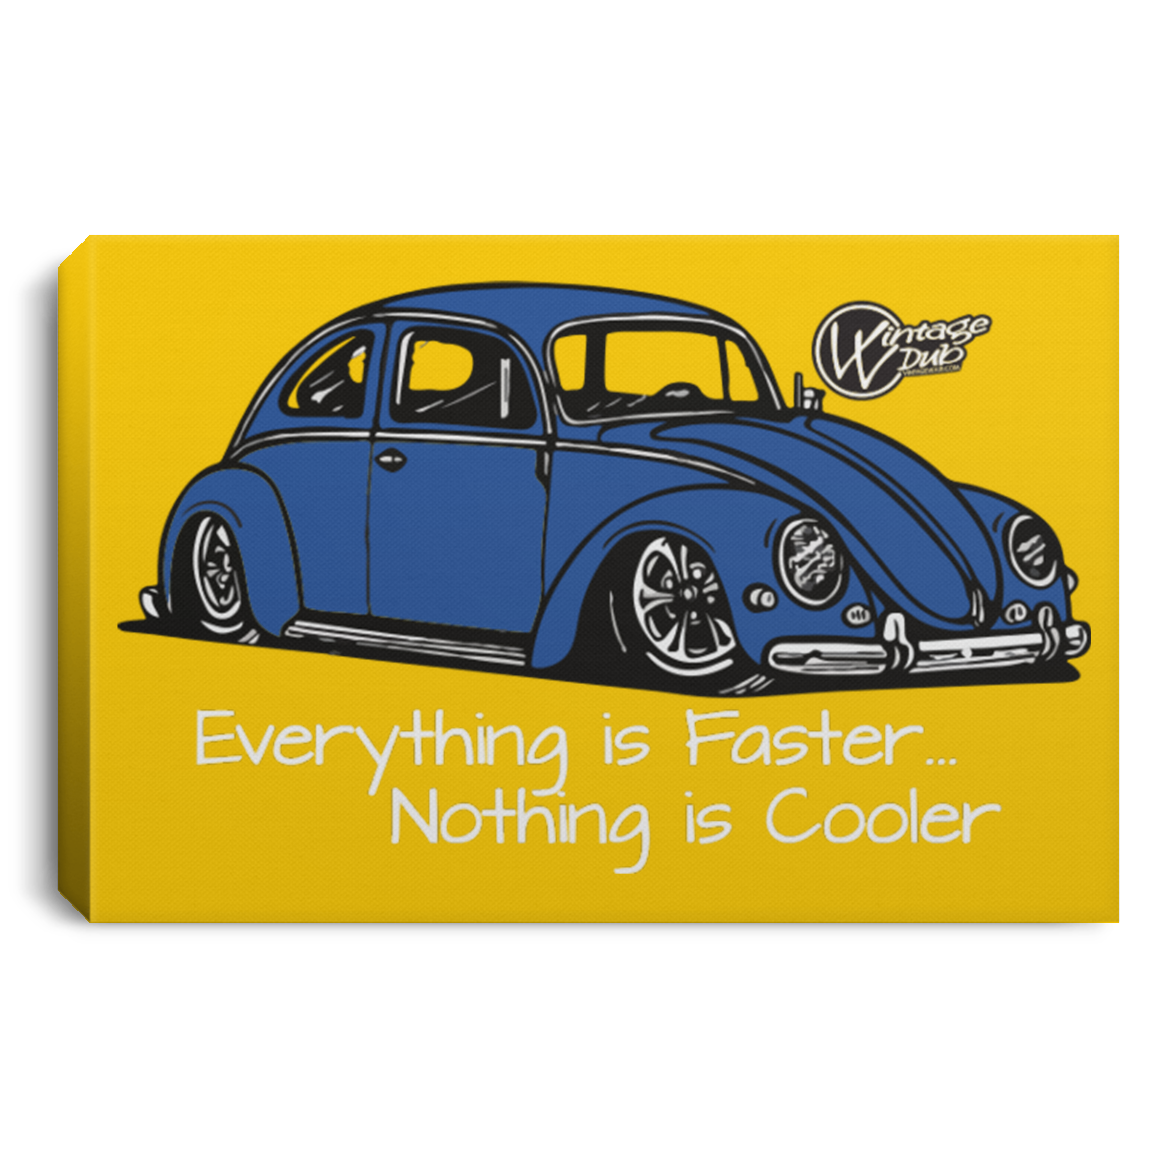 Vintage Bug Framed Canvas 3 Sizes, - Aircooled VW - Vintage Vdub